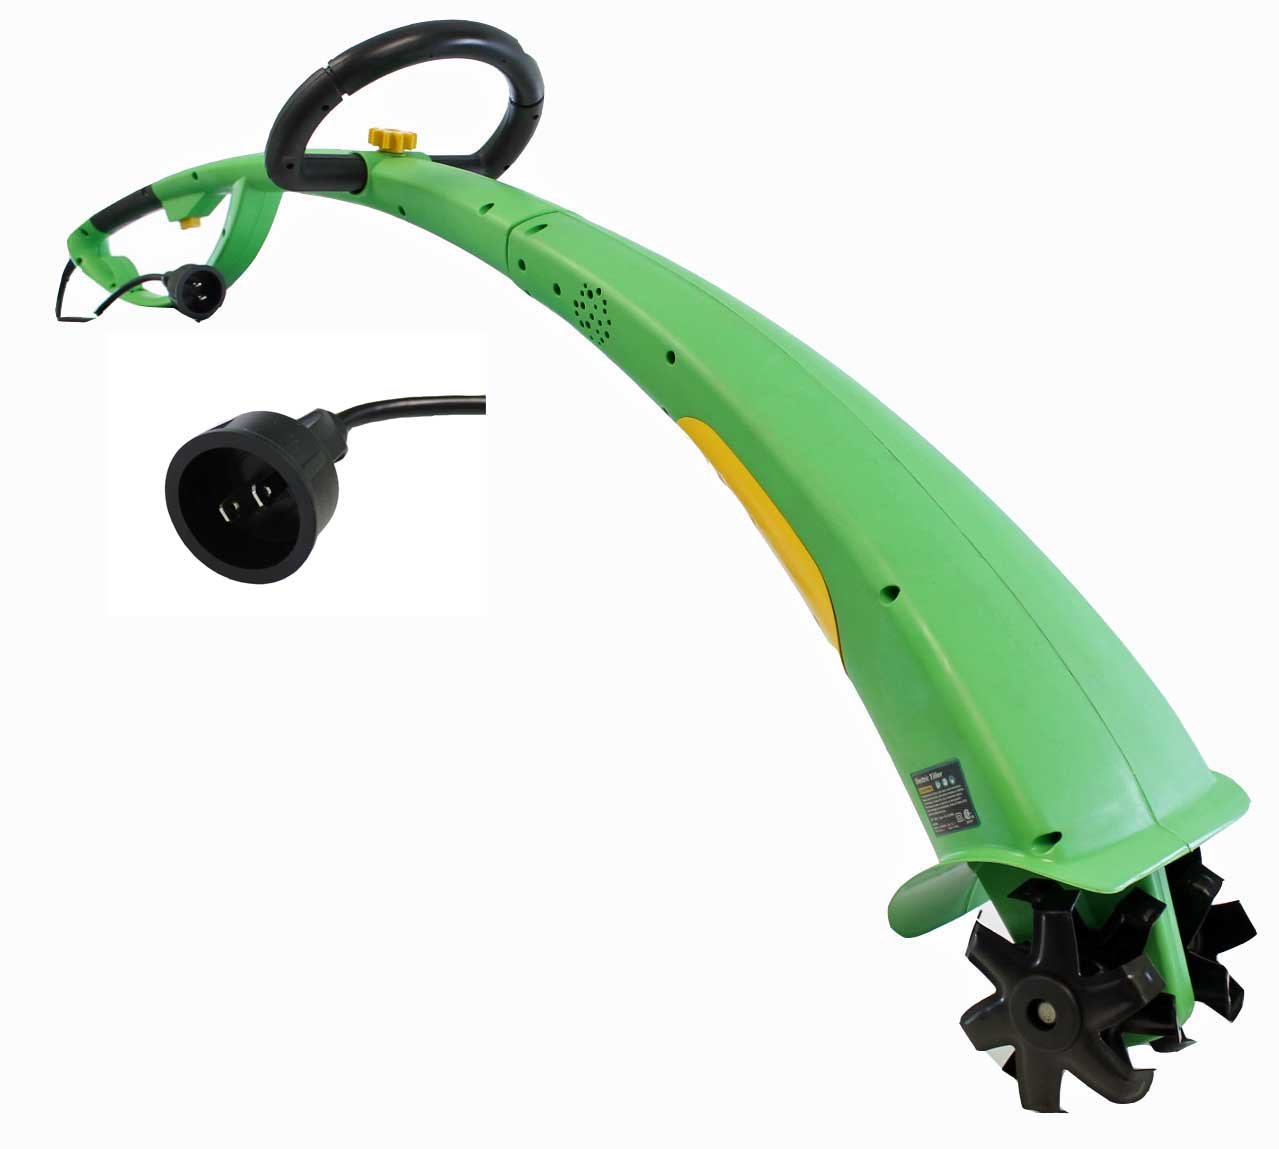 New Power Glide 1/3 HP 6'' Cutting Width Corded Electric Garden Tiller/Cultivator by Powerglide